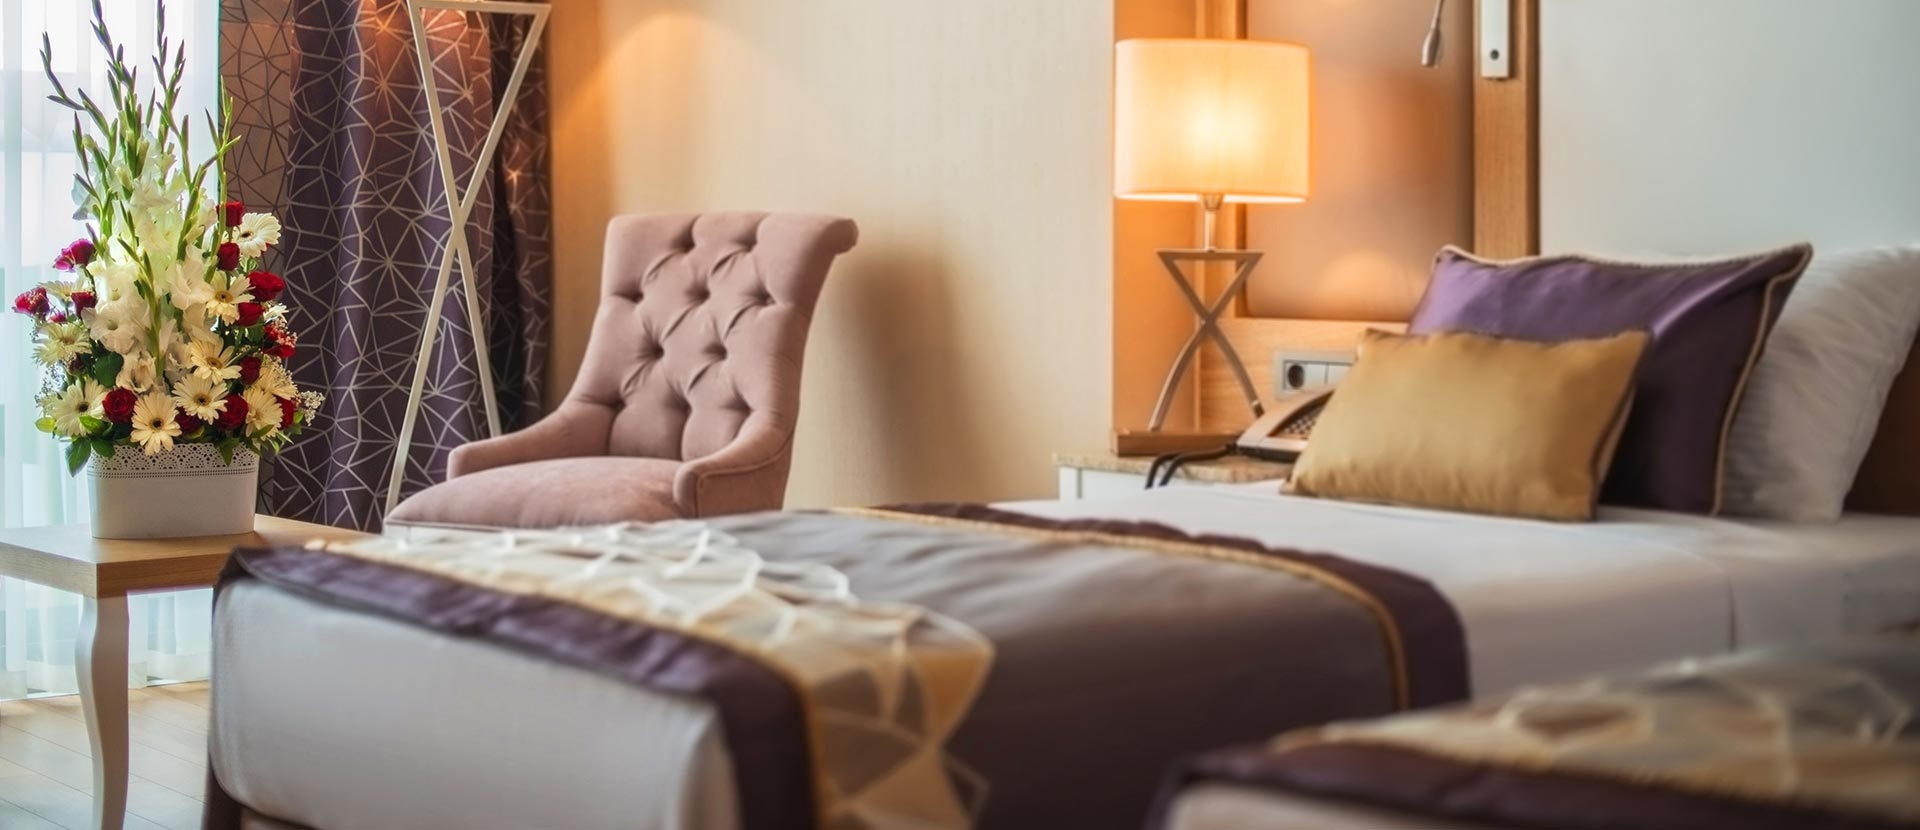 Dallas Hotel Recovery Services